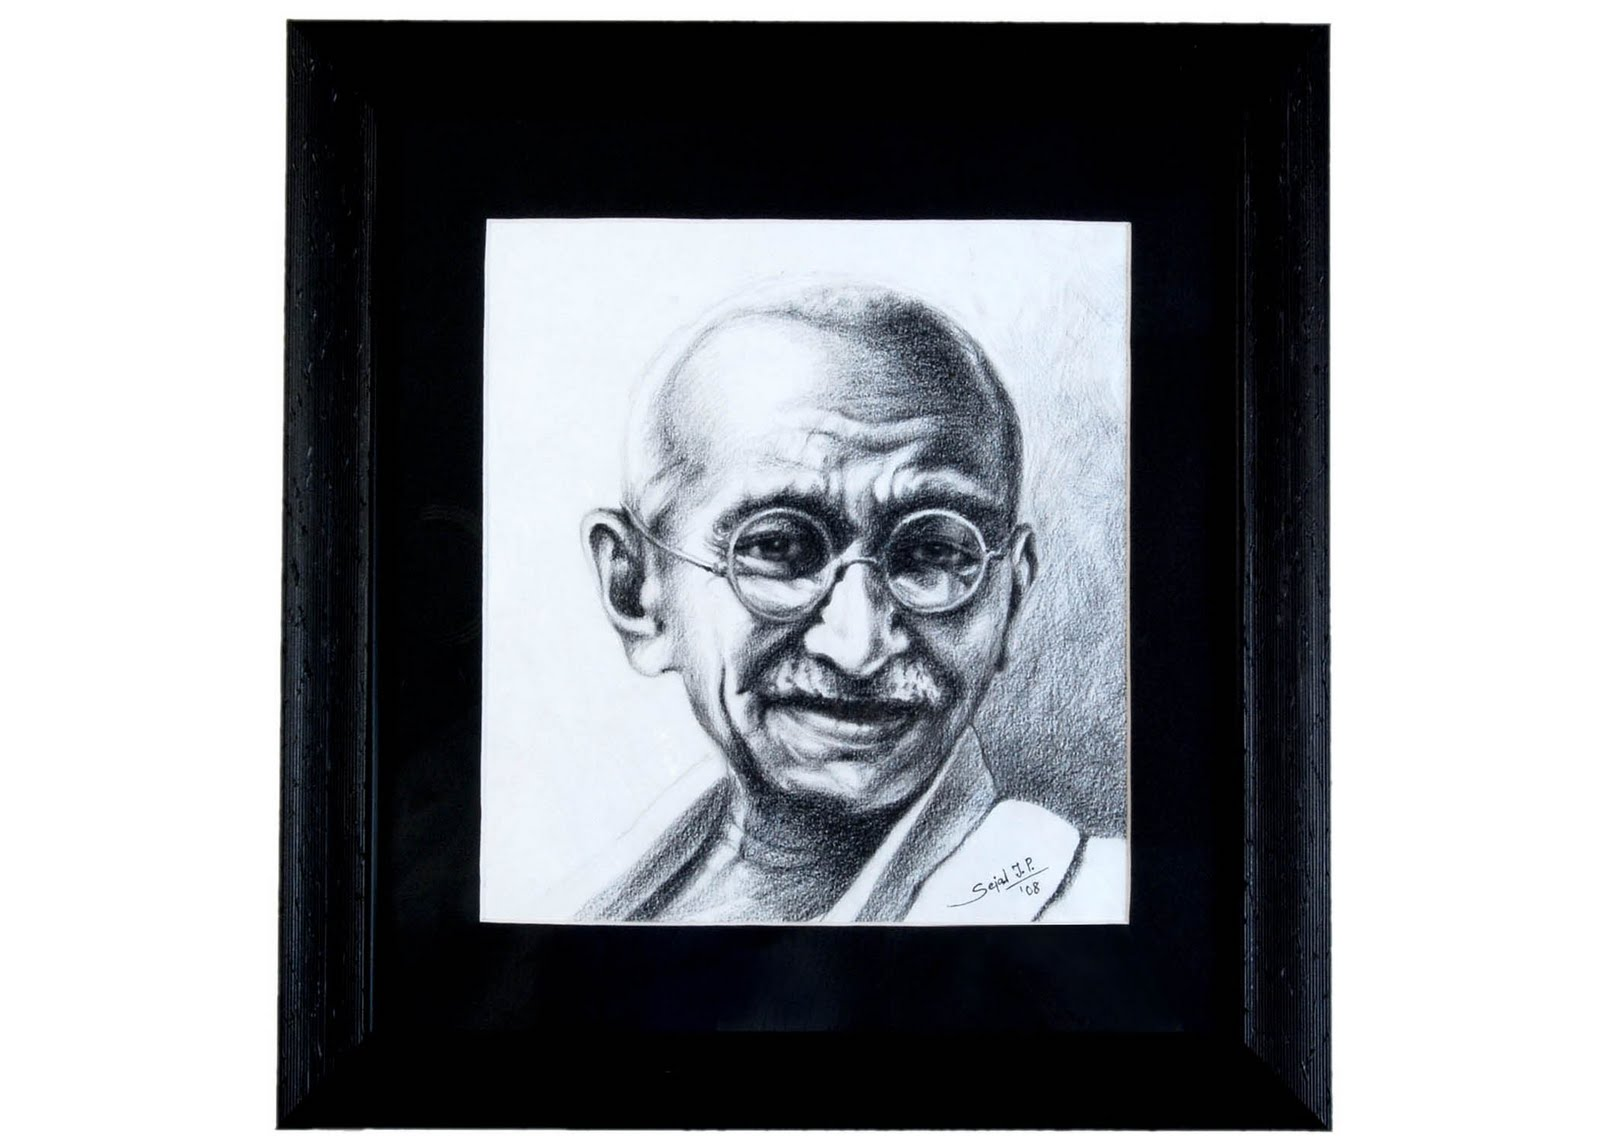 life of mahatma gandhi and his influence to the world - gandhi gandhi said his great aim in life was to have a vision of god  biography of mahatma gandhi his success and influence was mediocre in law religion and politics he rose to prominence by chance.